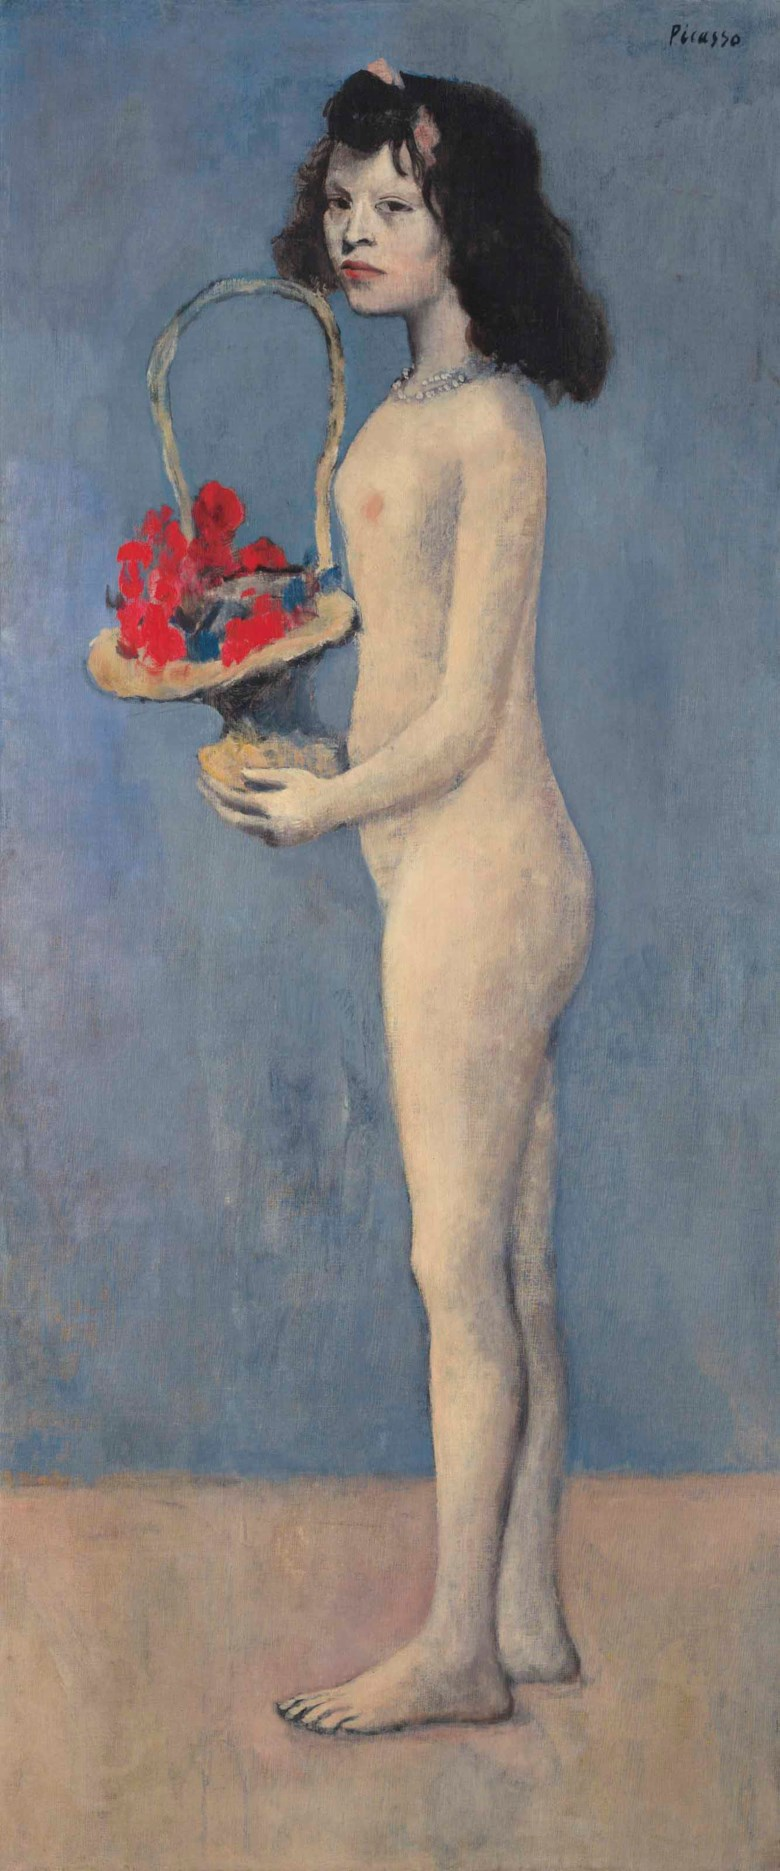 Pablo Picasso (1881-1973), Fillette à la corbeille fleurie, 1905. Oil on canvas. 60⅞ x 26 in (154.8 x 66.1 cm). Estimate on request. This lot is offered in The Collection of David and Peggy Rockefeller 19th & 20th Century Art, Evening Sale on 8 May at Christie's in New York © 2017 Estate of Pablo Picasso  Artists Rights Society (ARS), New York.